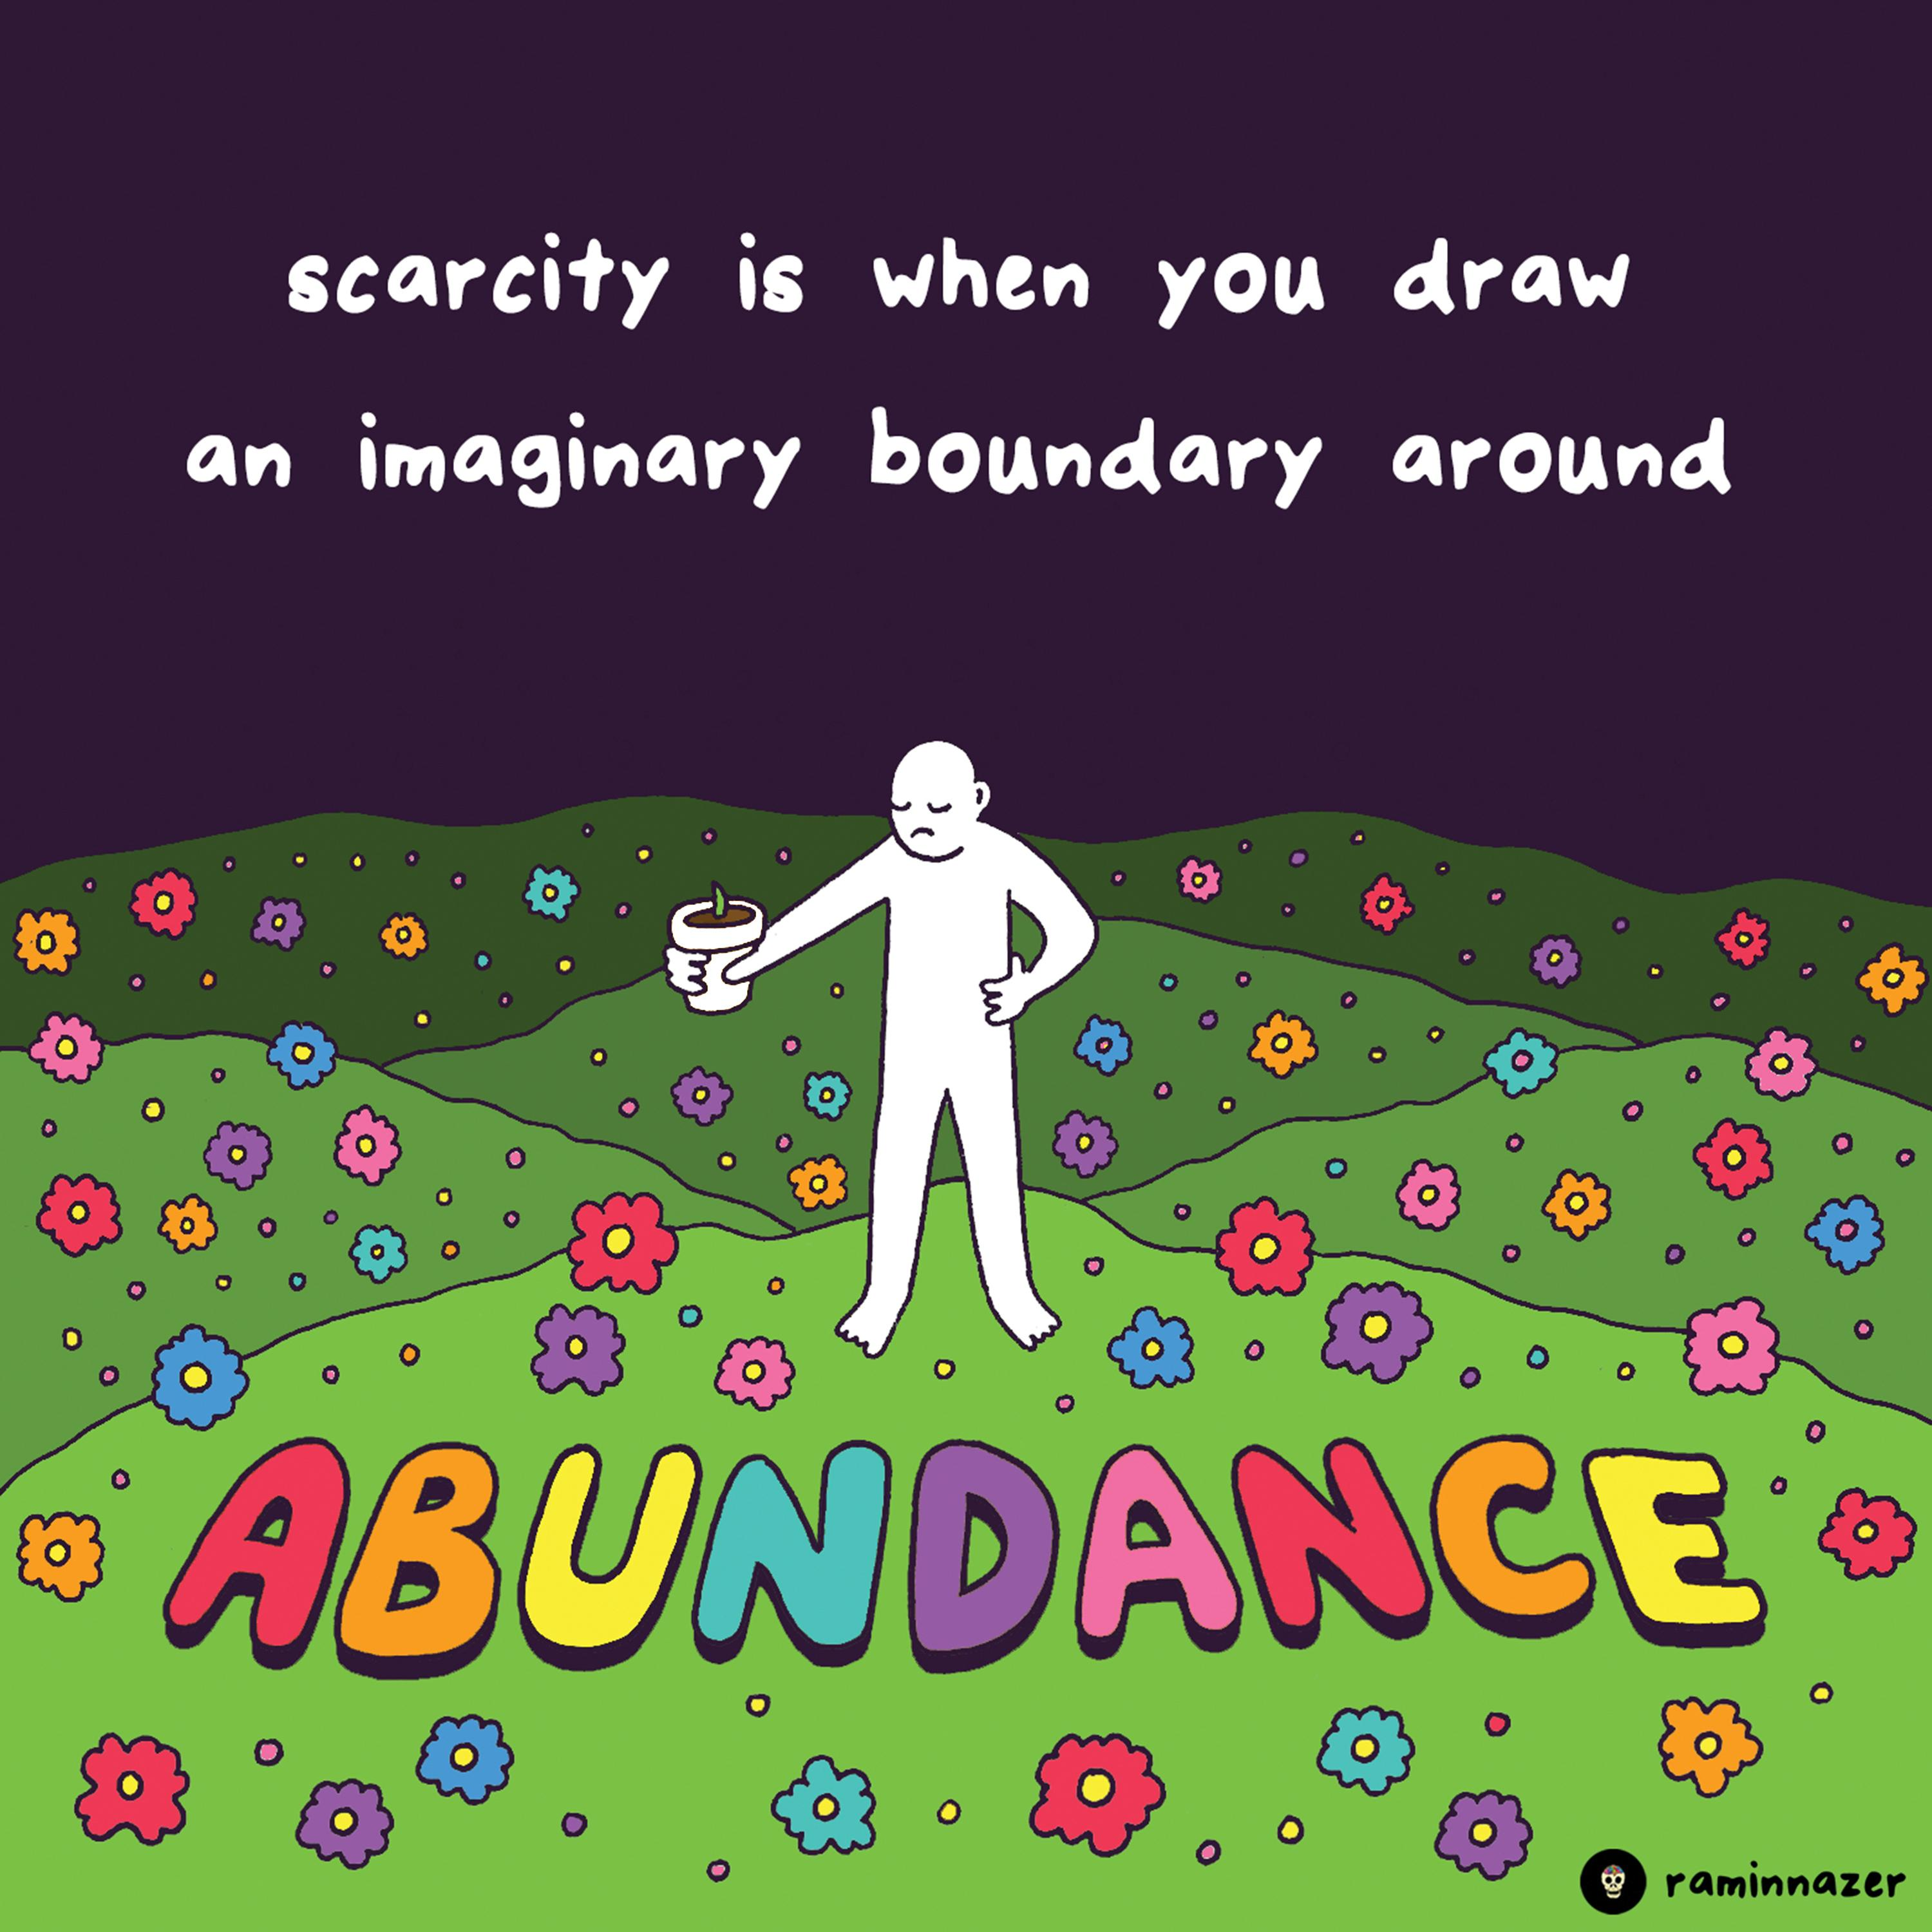 [Image] Scarcity Is When You Draw An Imaginary Boundary Around Abundance